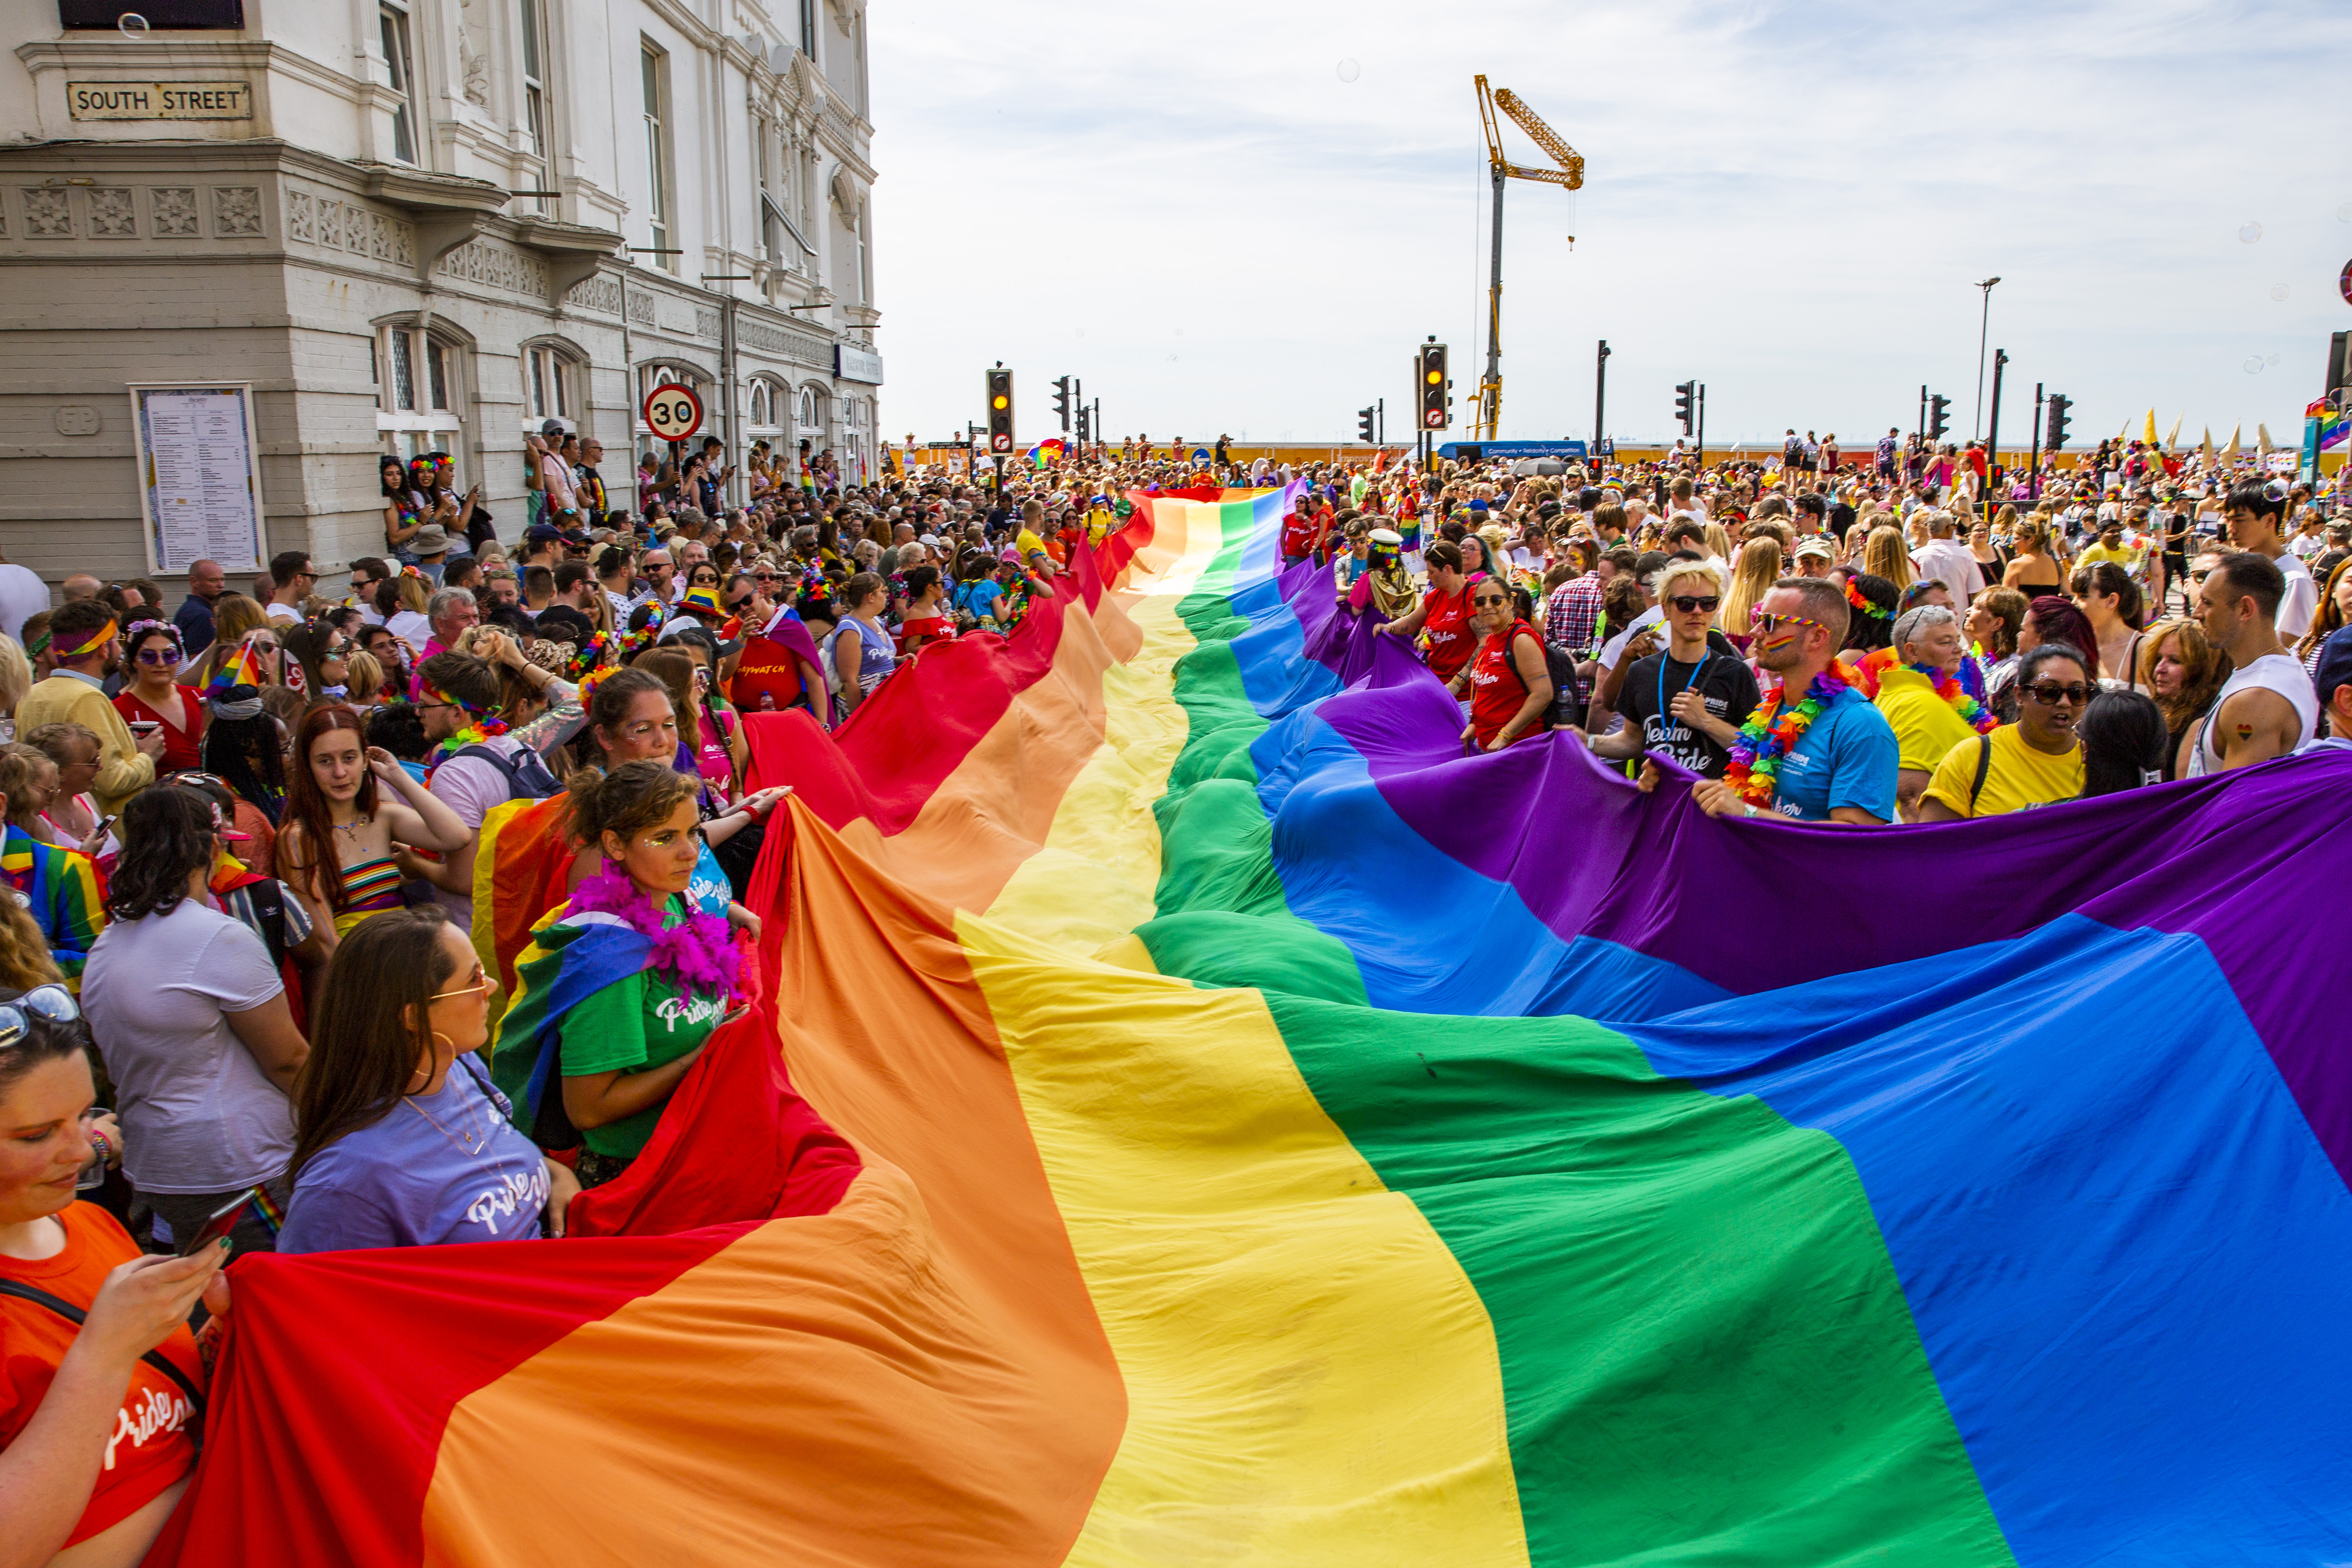 PRIDE IN PICTURES: Hugo's view of the Pride parade